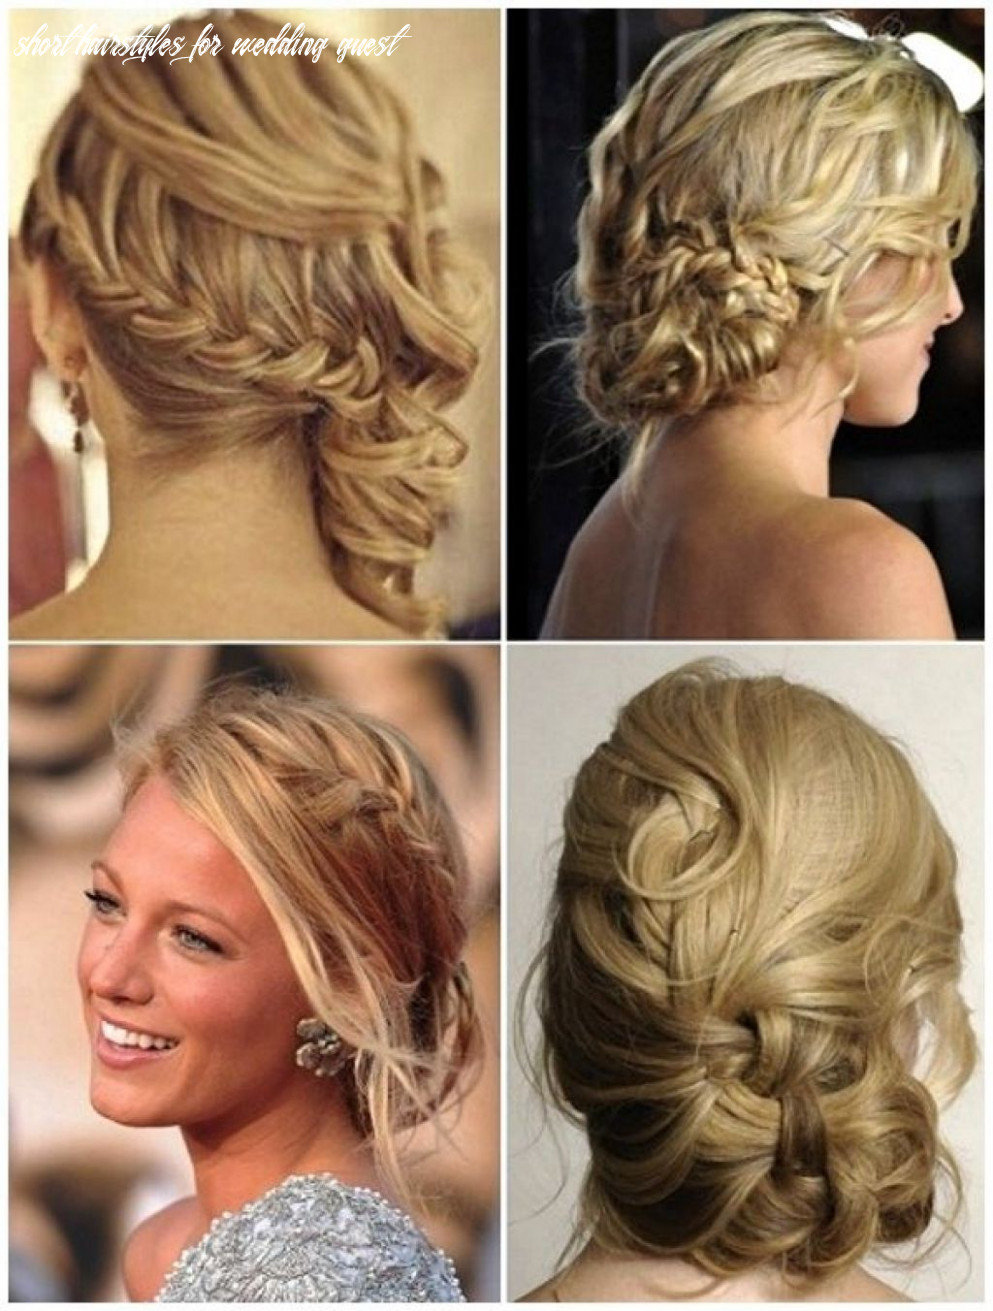 Hairstyle for wedding guest brides hairstyle ideas short hair